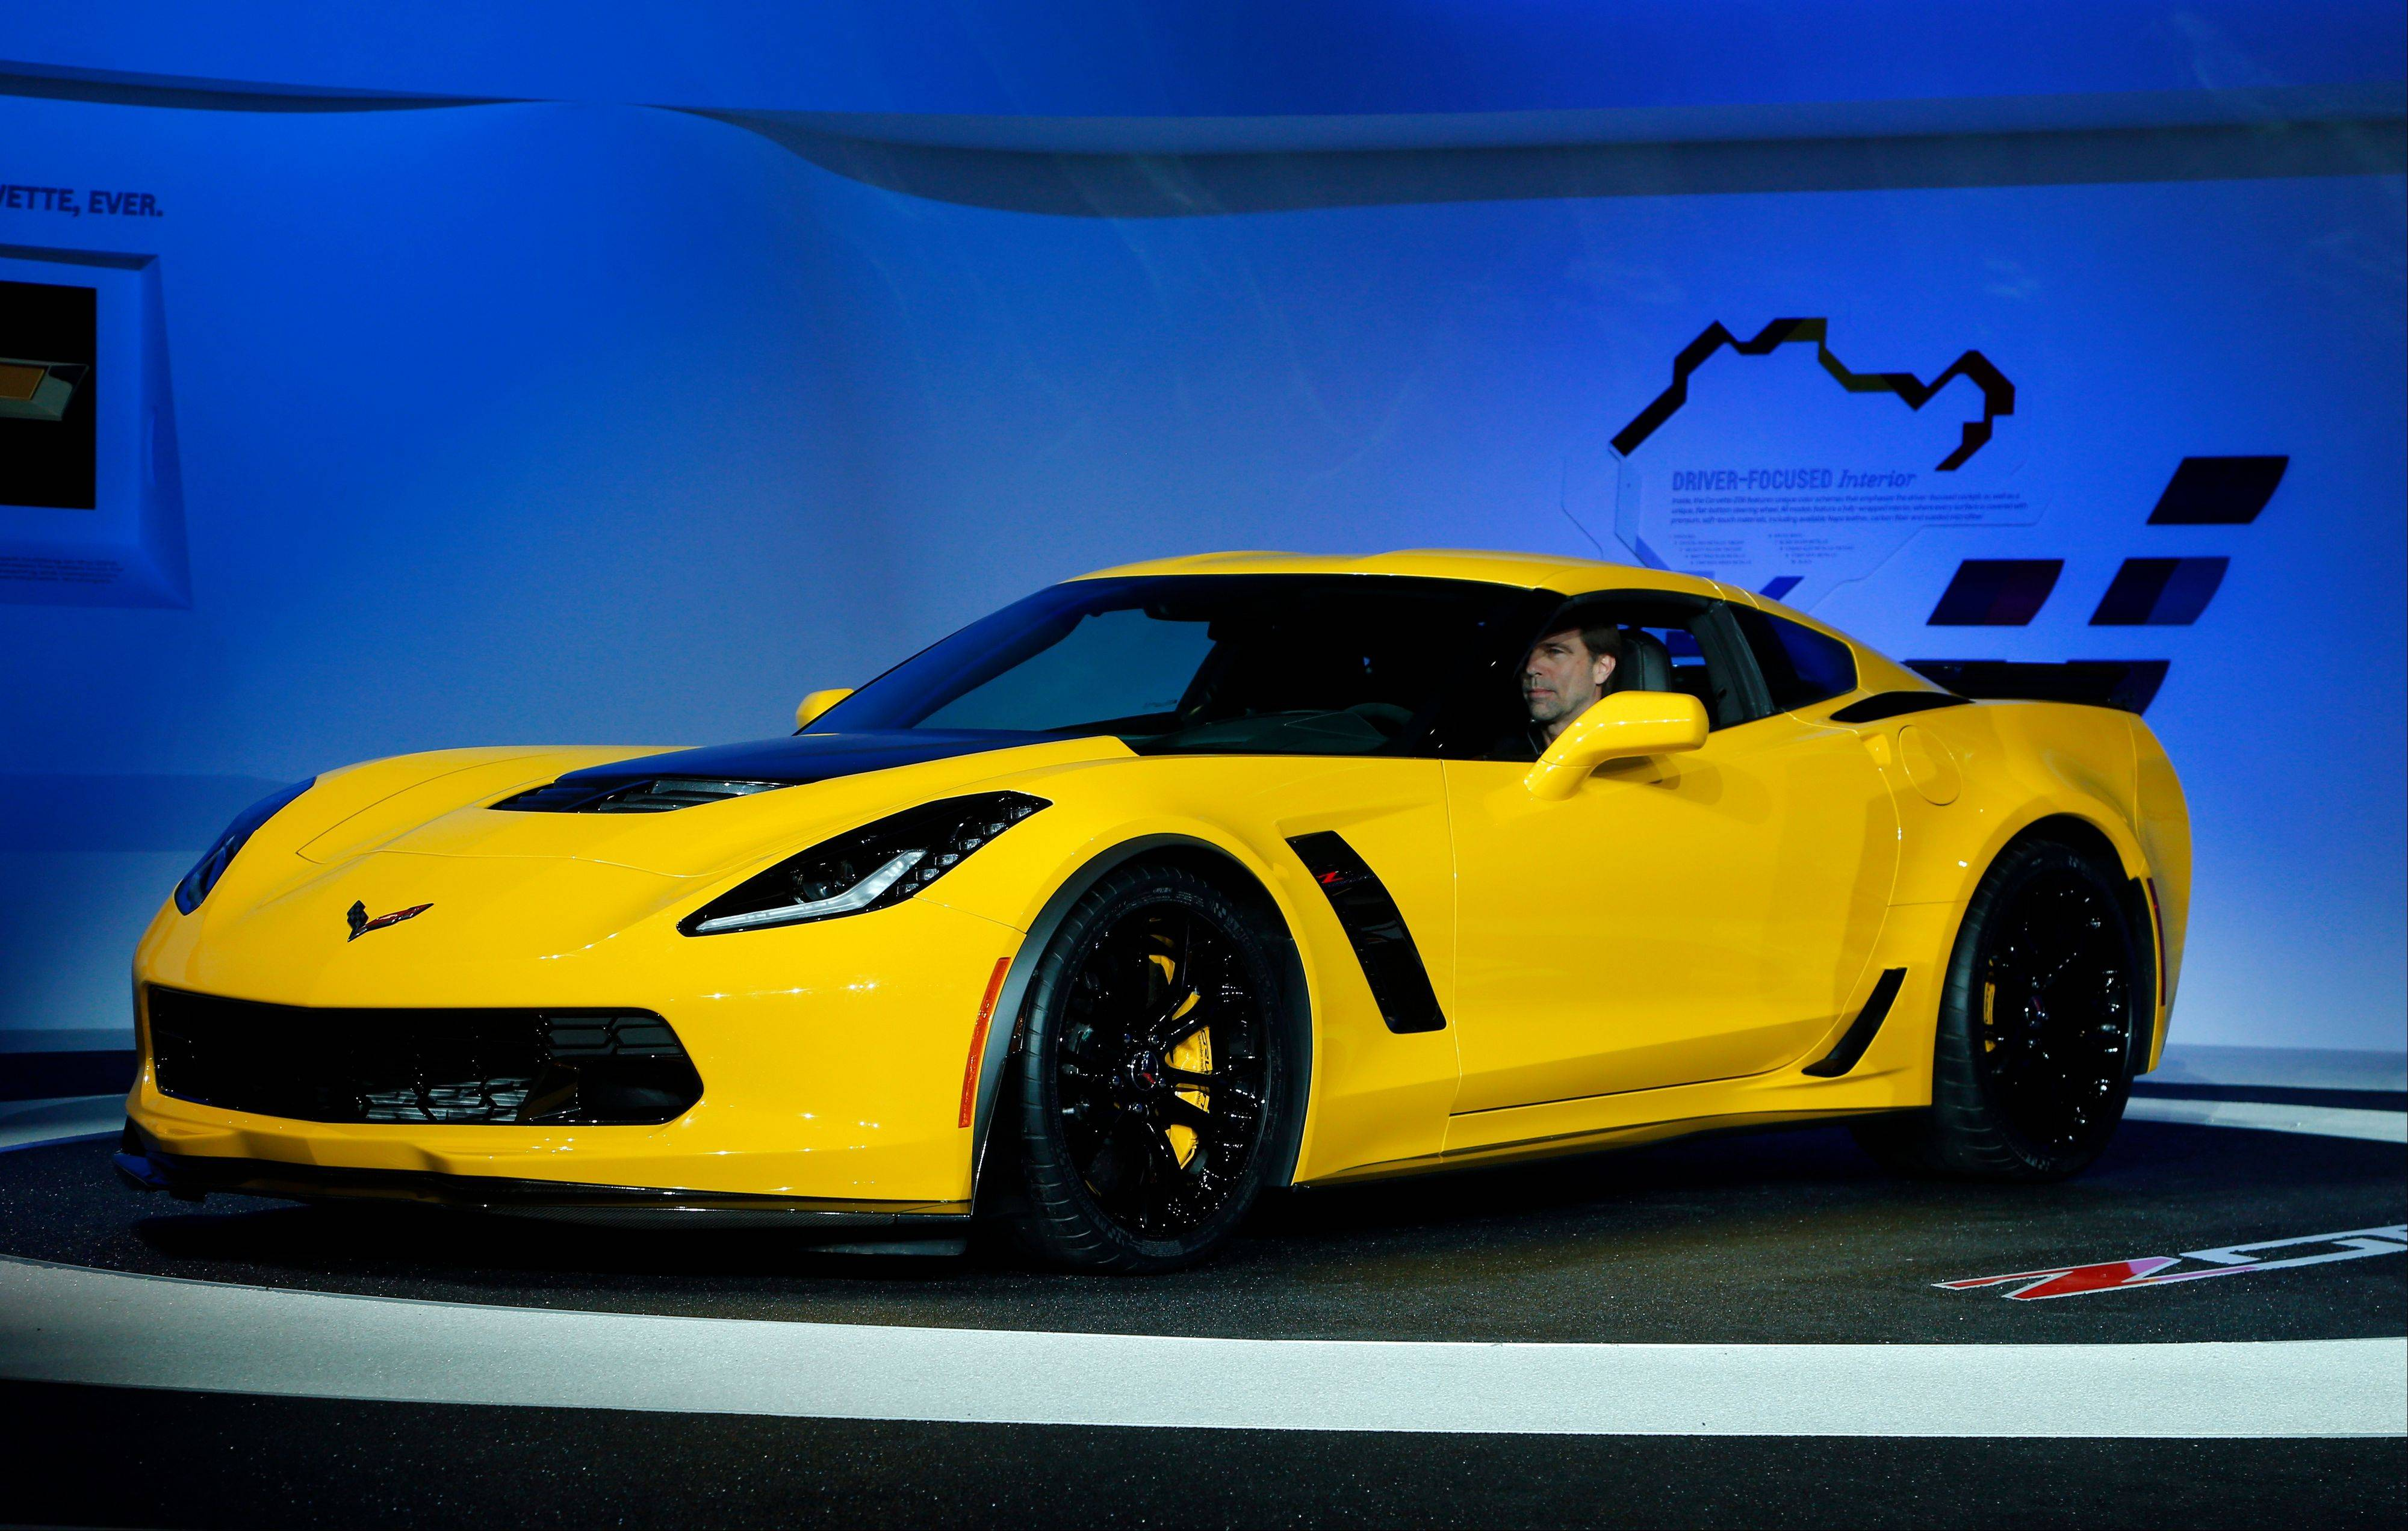 The 2015 Chevrolet Corvette Z06 debuts at media previews during the North American International Auto Show in Detroit Monday. The Corvette Stingray received the car of the year award.